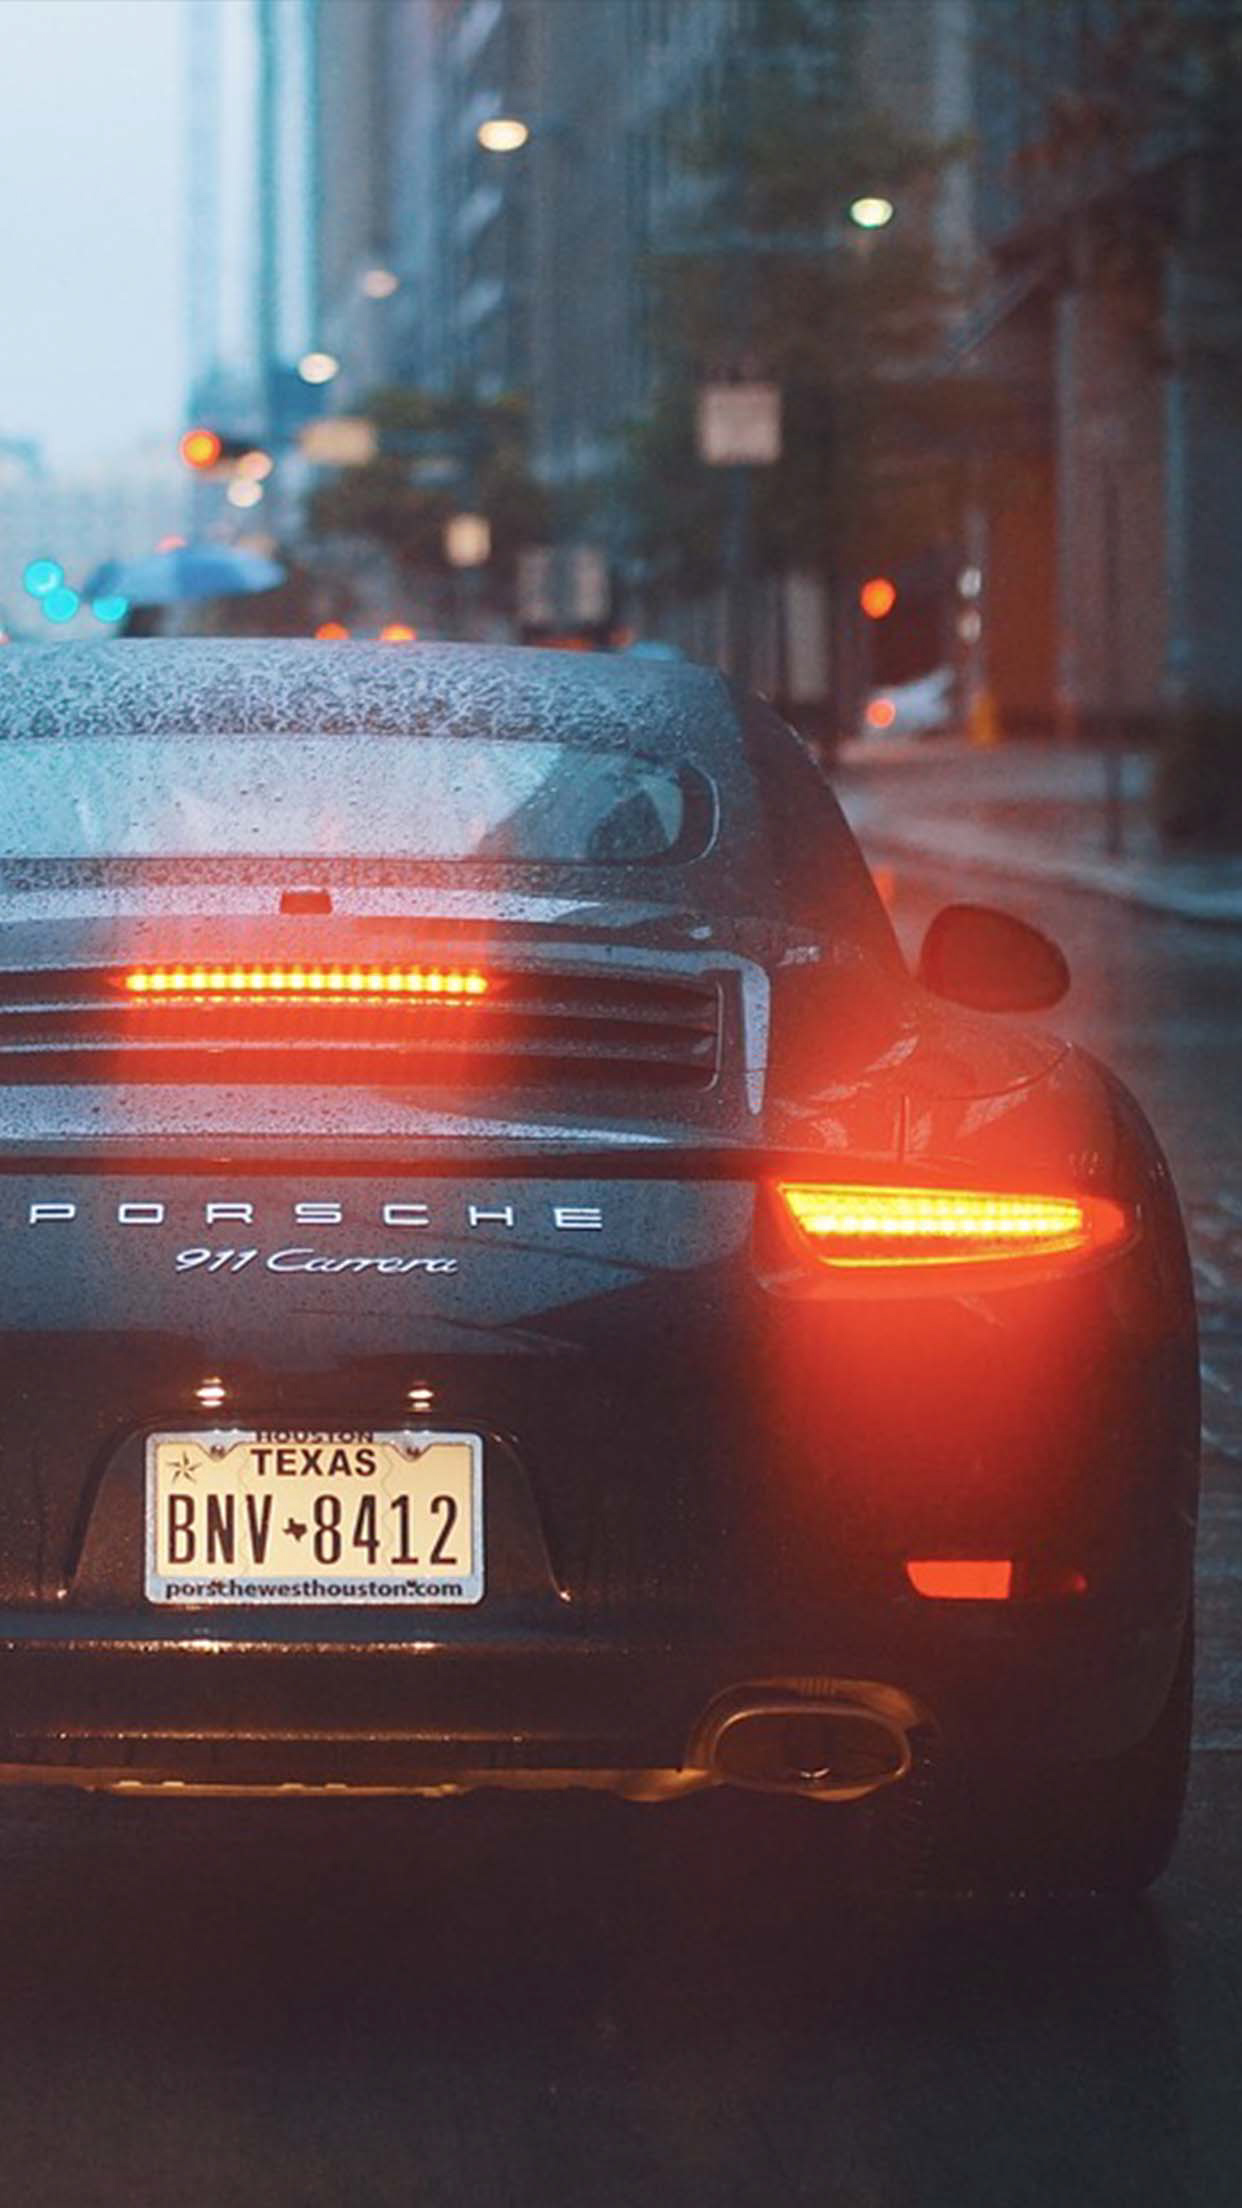 22 Porsche Wallpapers Including Iphone Resolution